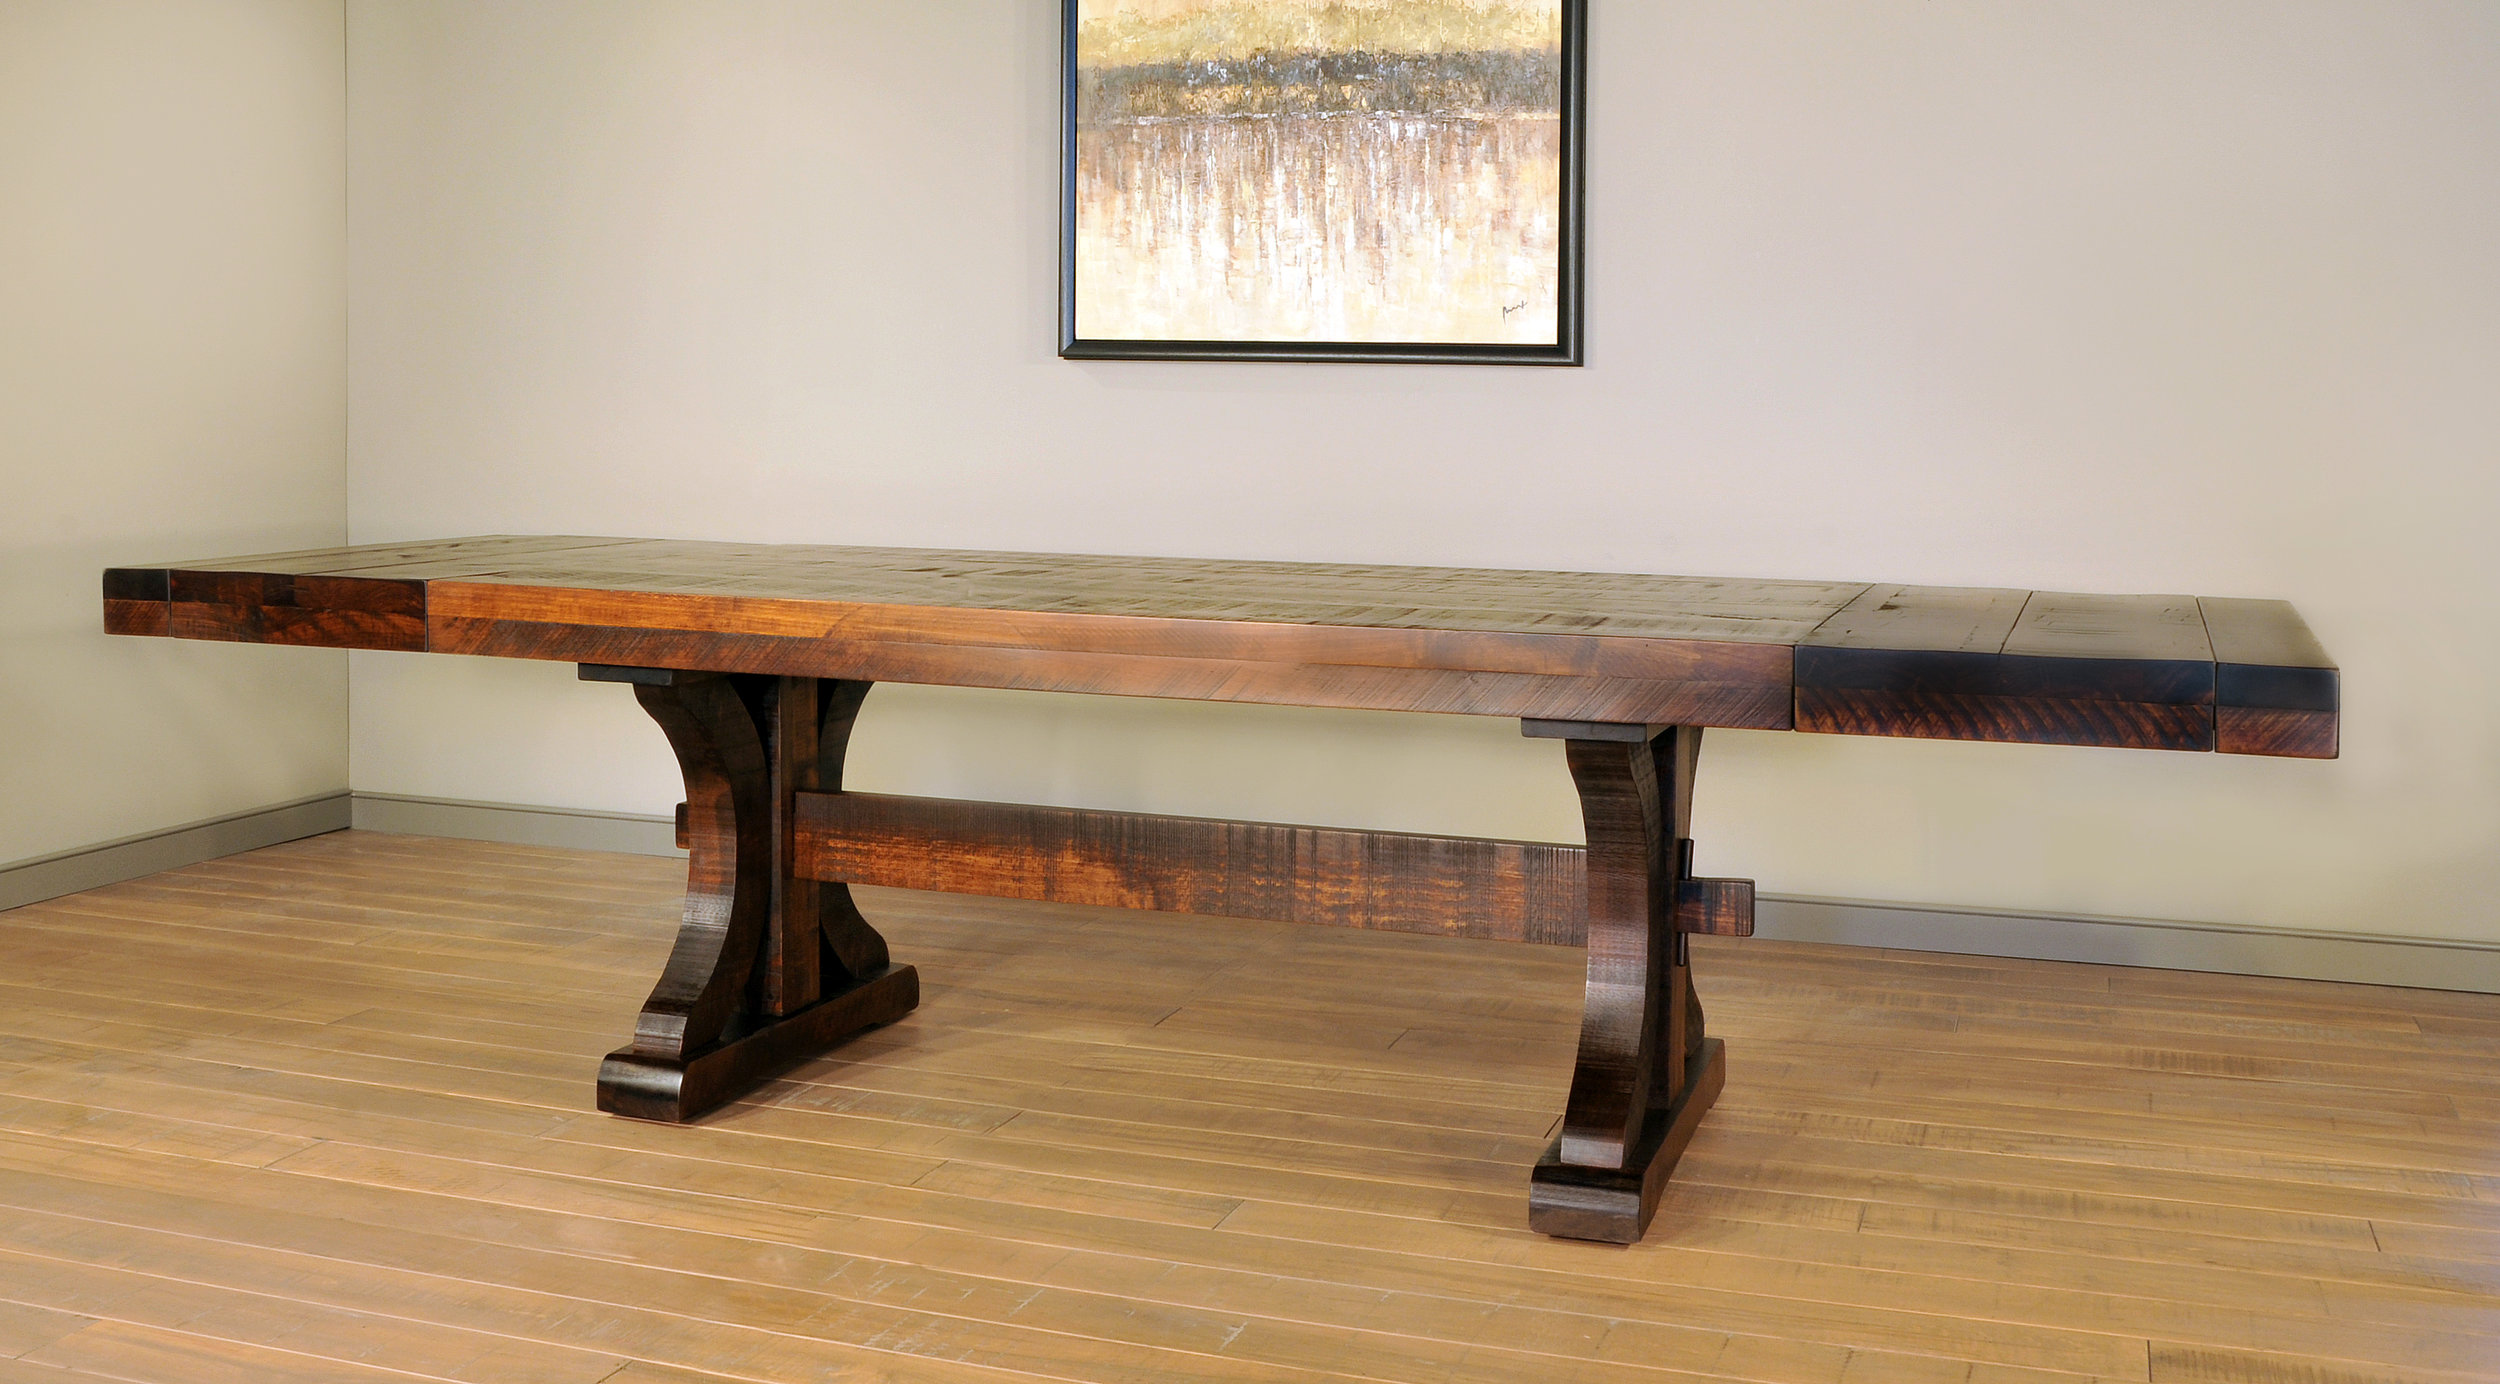 Rustic carlisle table with leaves